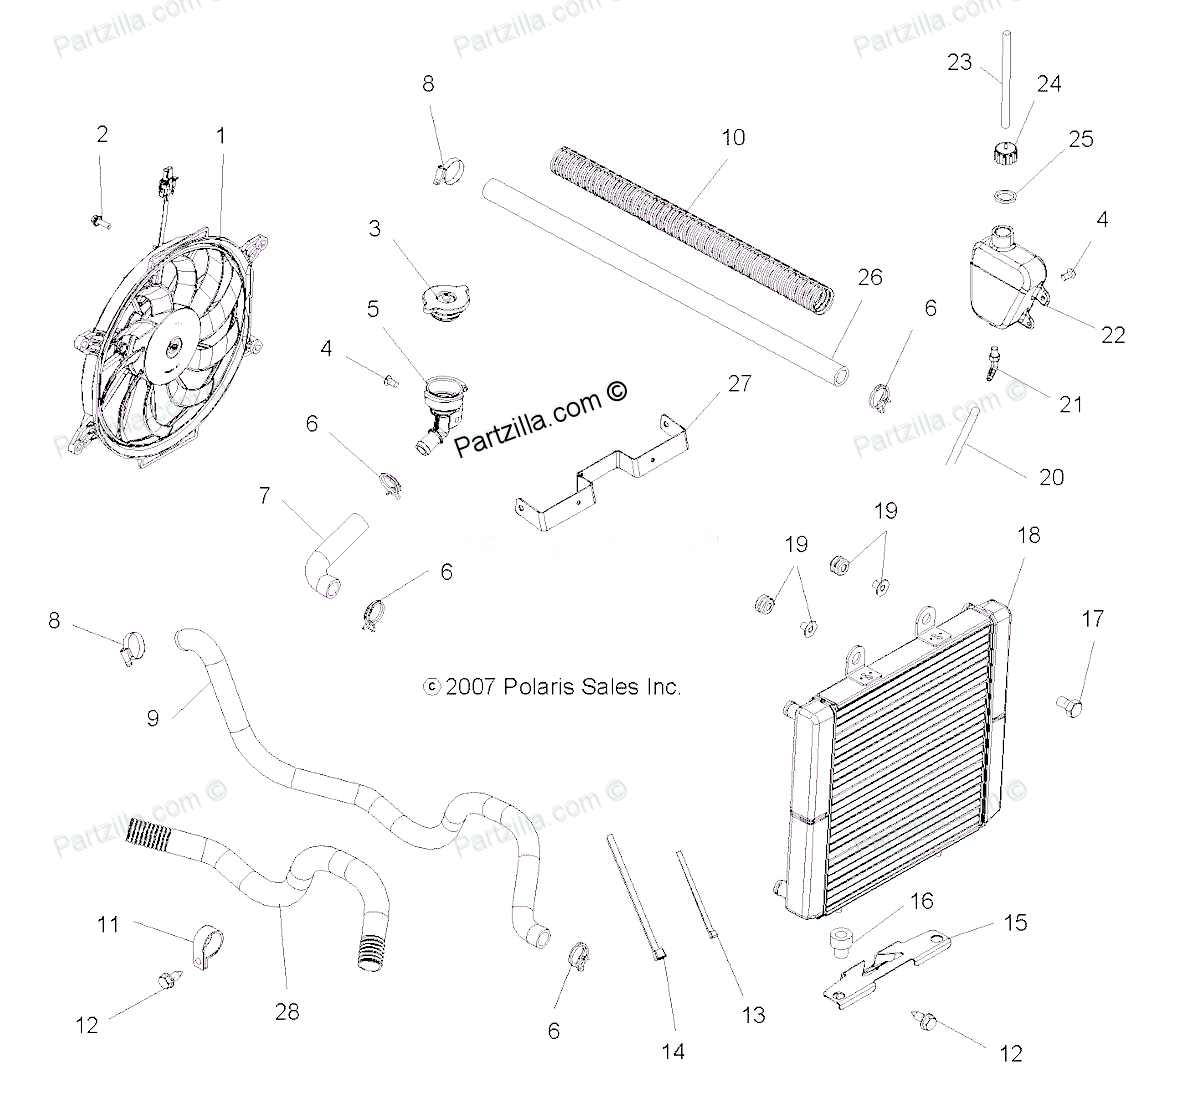 2013 Polaris Atv Wiring Diagram. Polaris Atv Repair